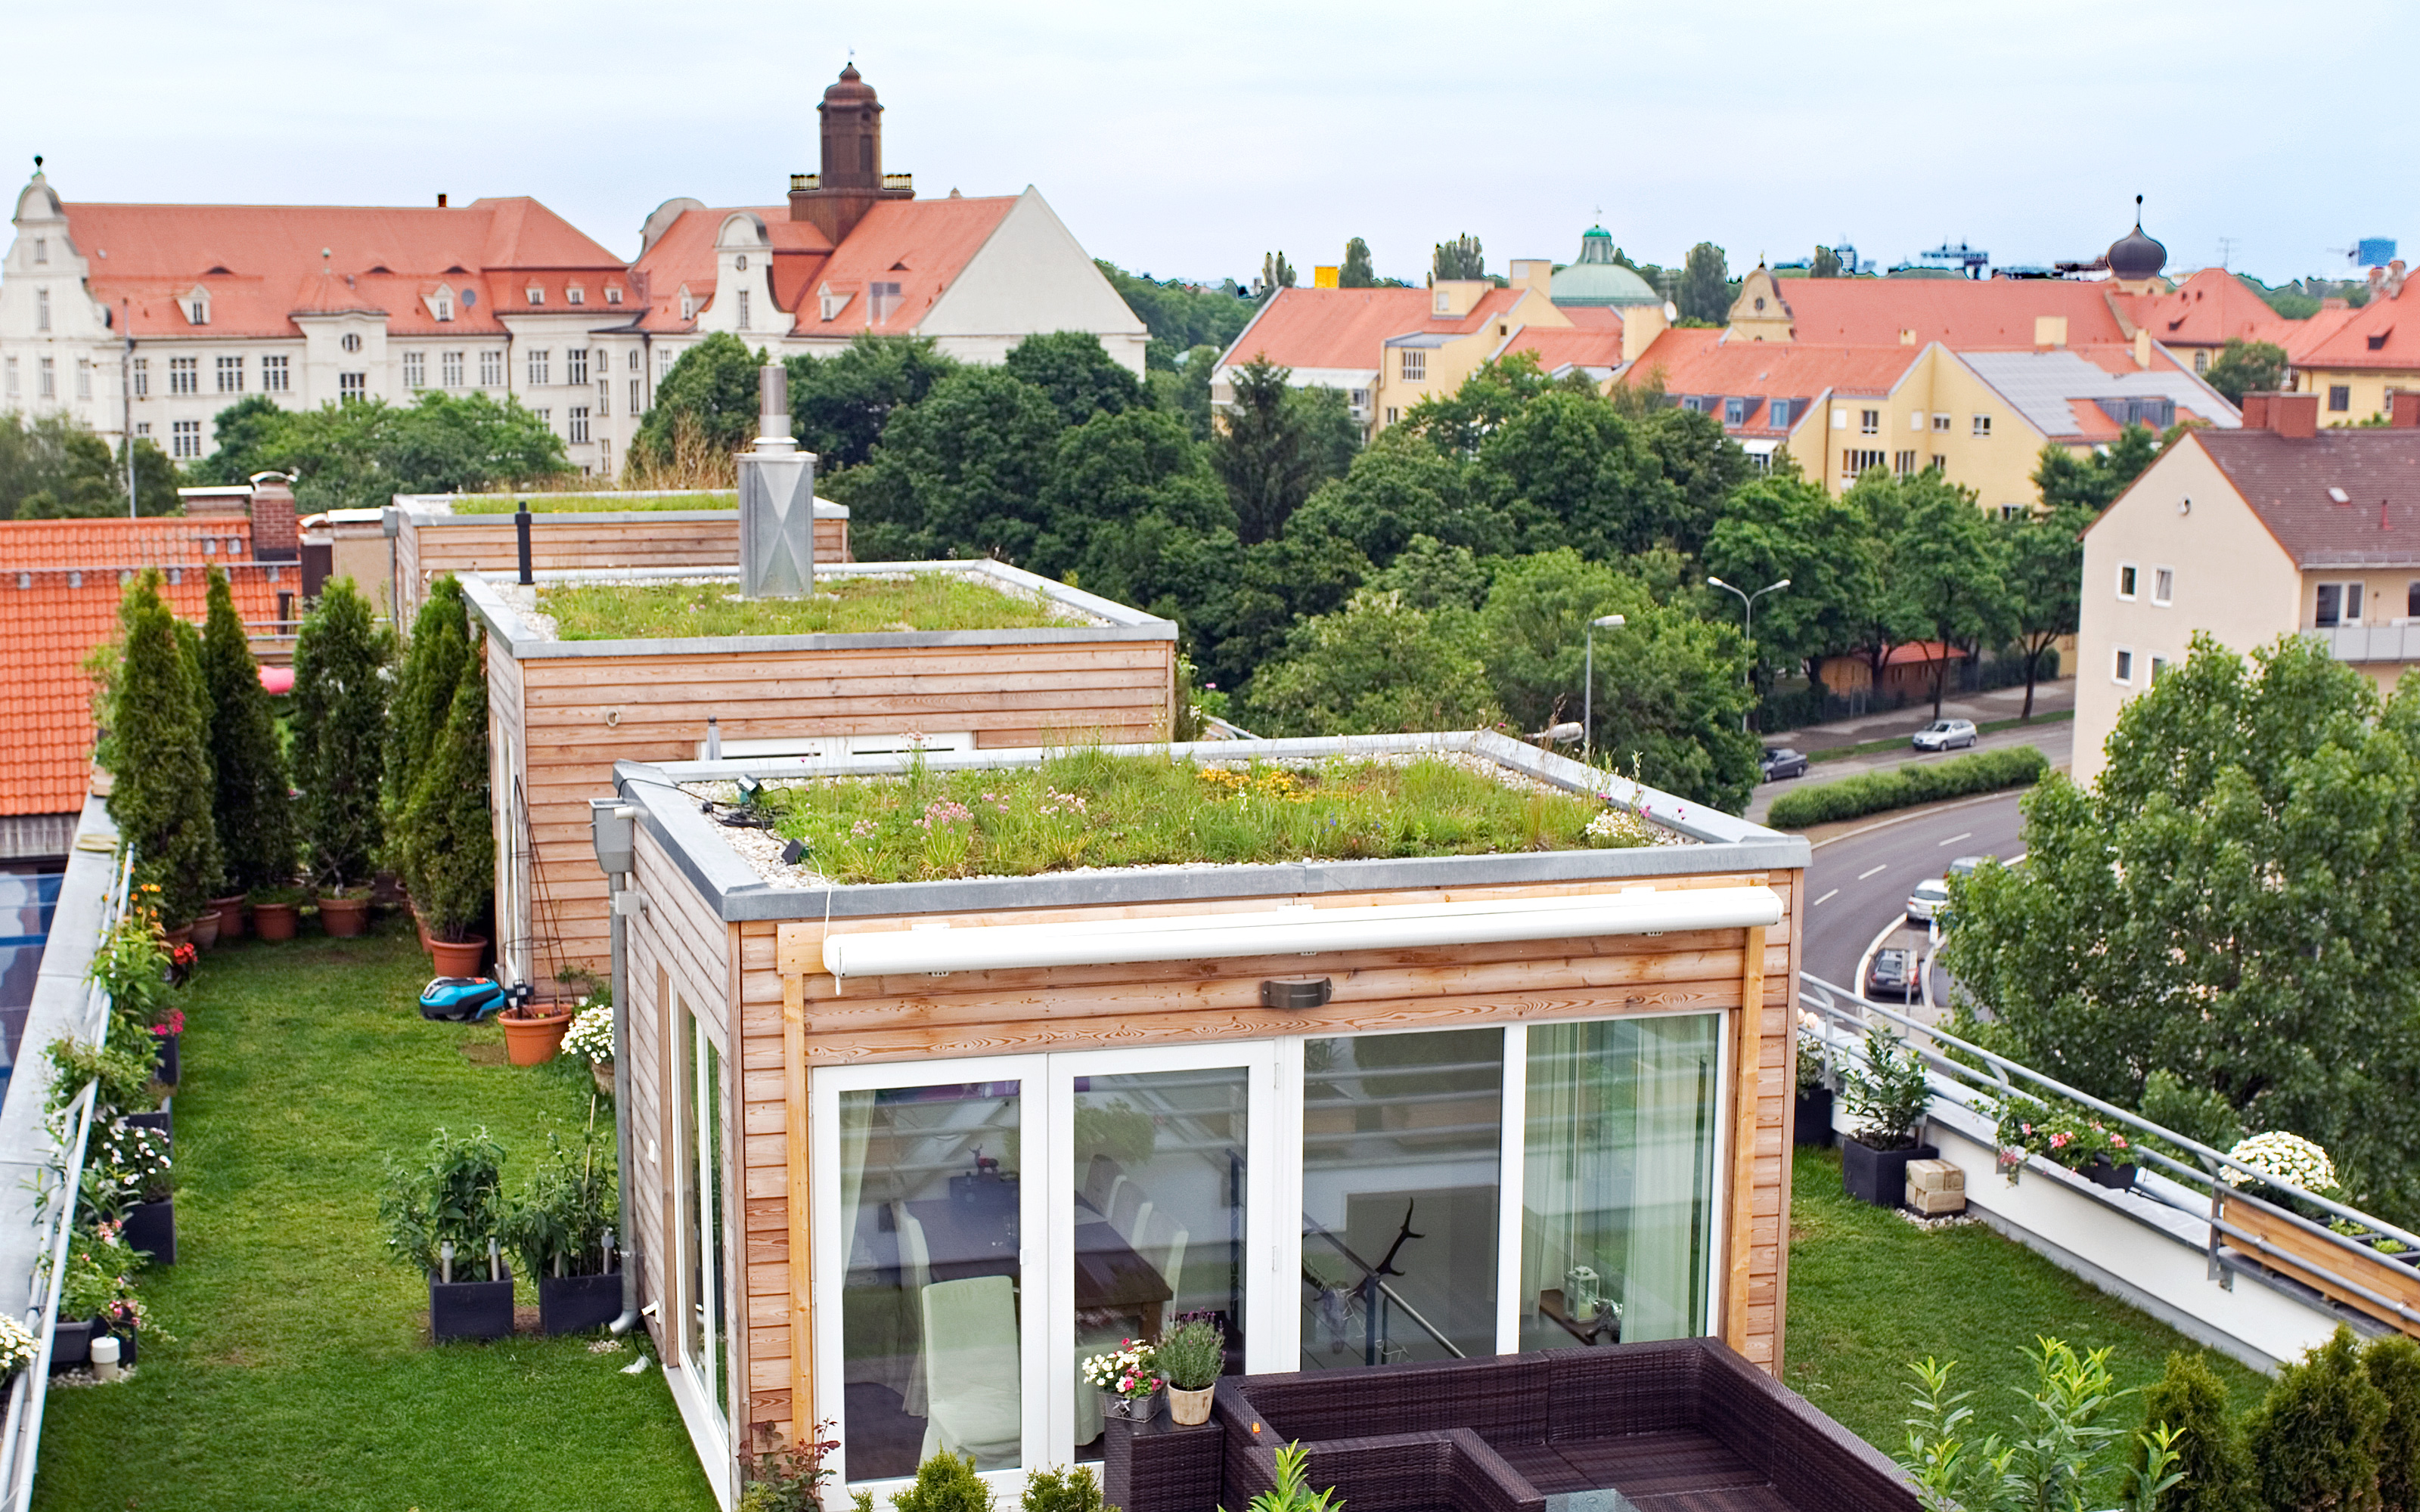 Roof garden with two cubical houses